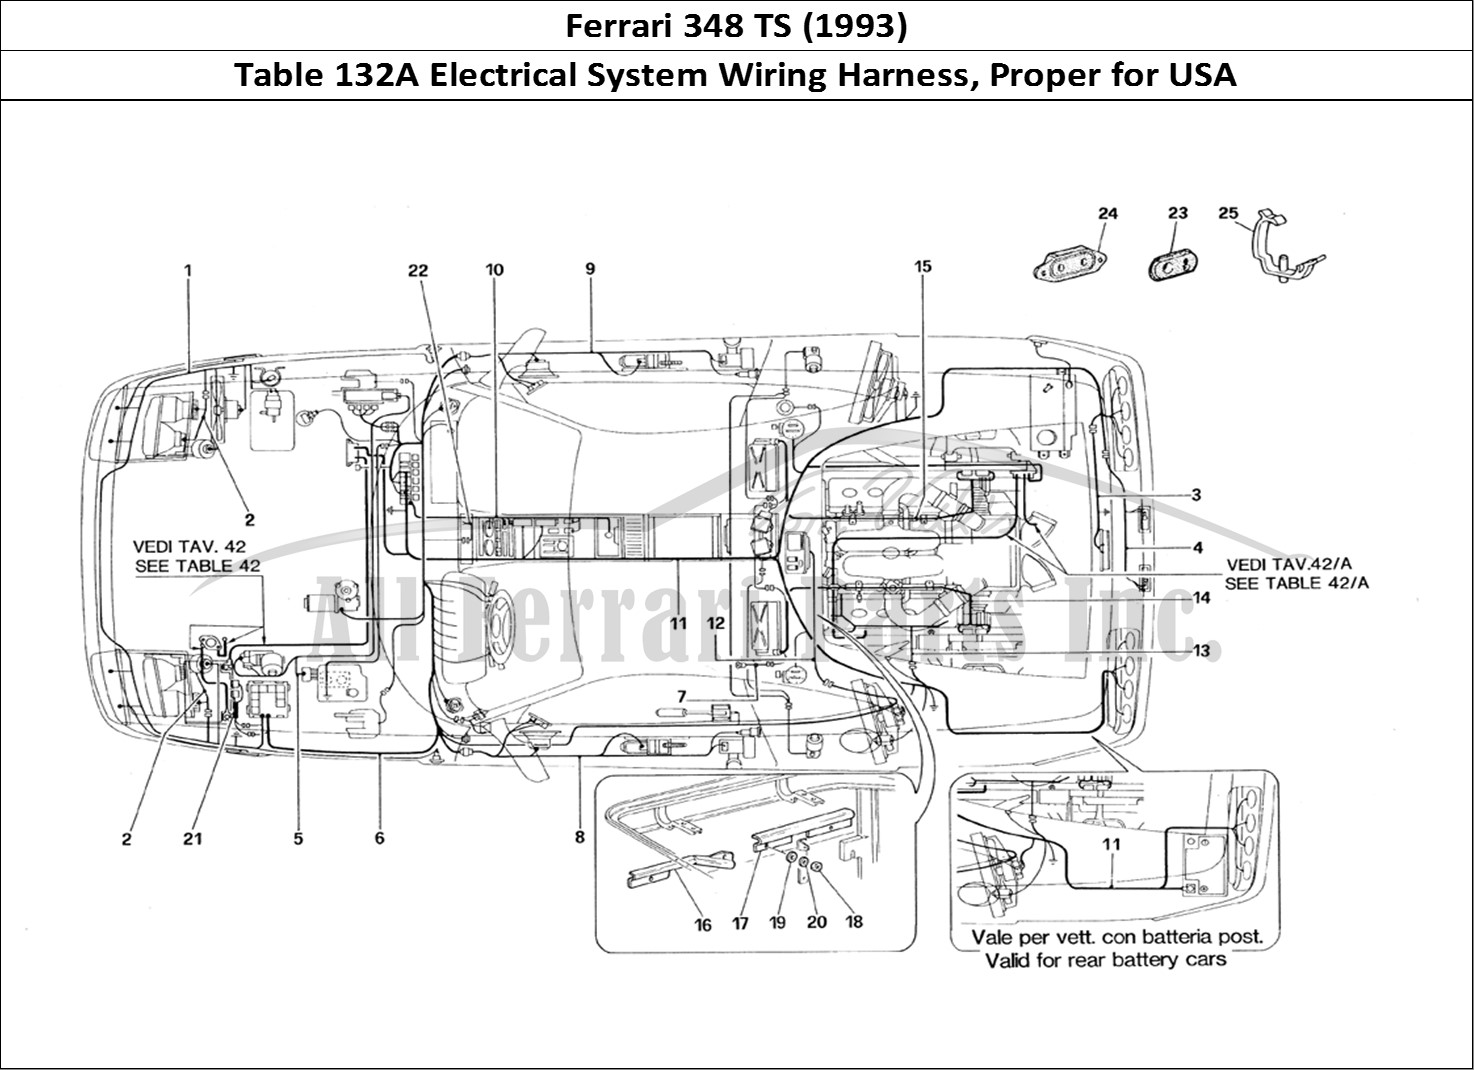 Ferrari ts bodywork table a electrical